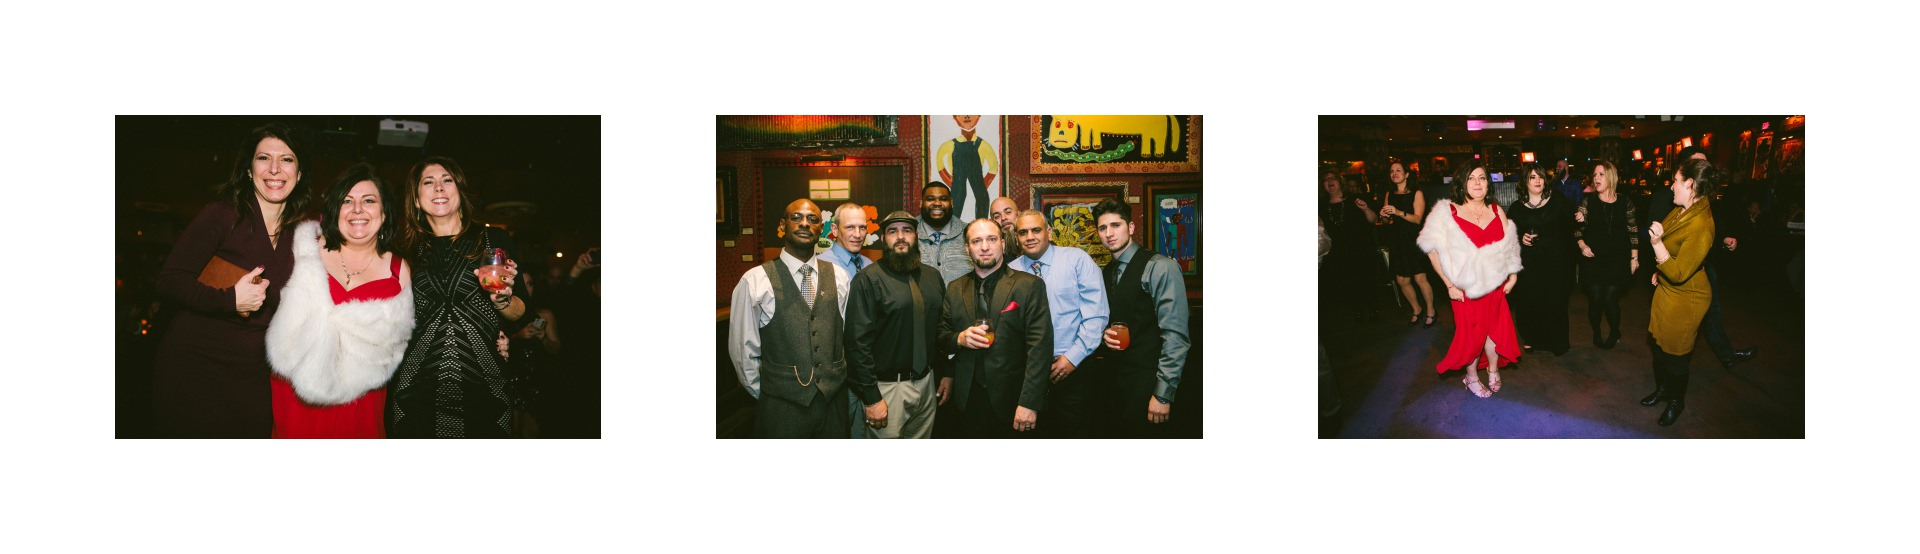 House of Blues Wedding Photographer in Downtown Cleveland 2 36.jpg